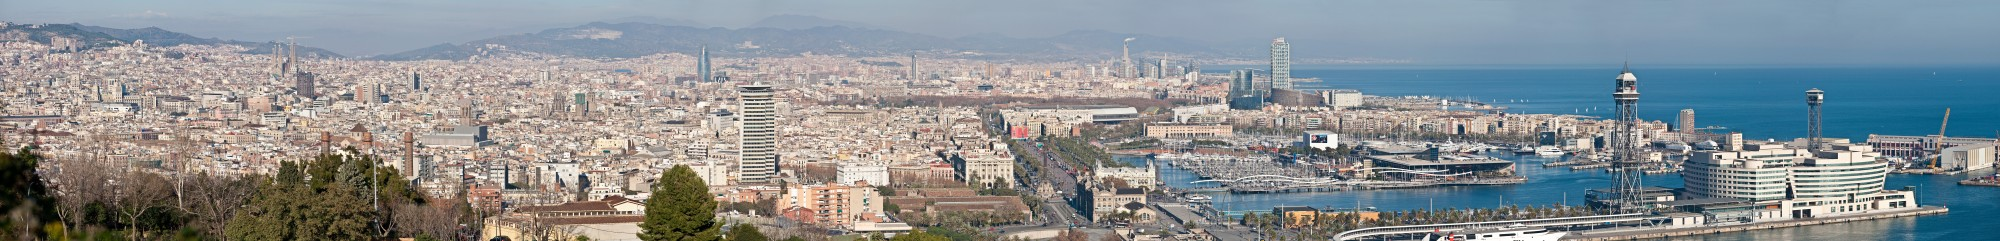 Barcelona Cityscape Panorama - Jan 2007 edit